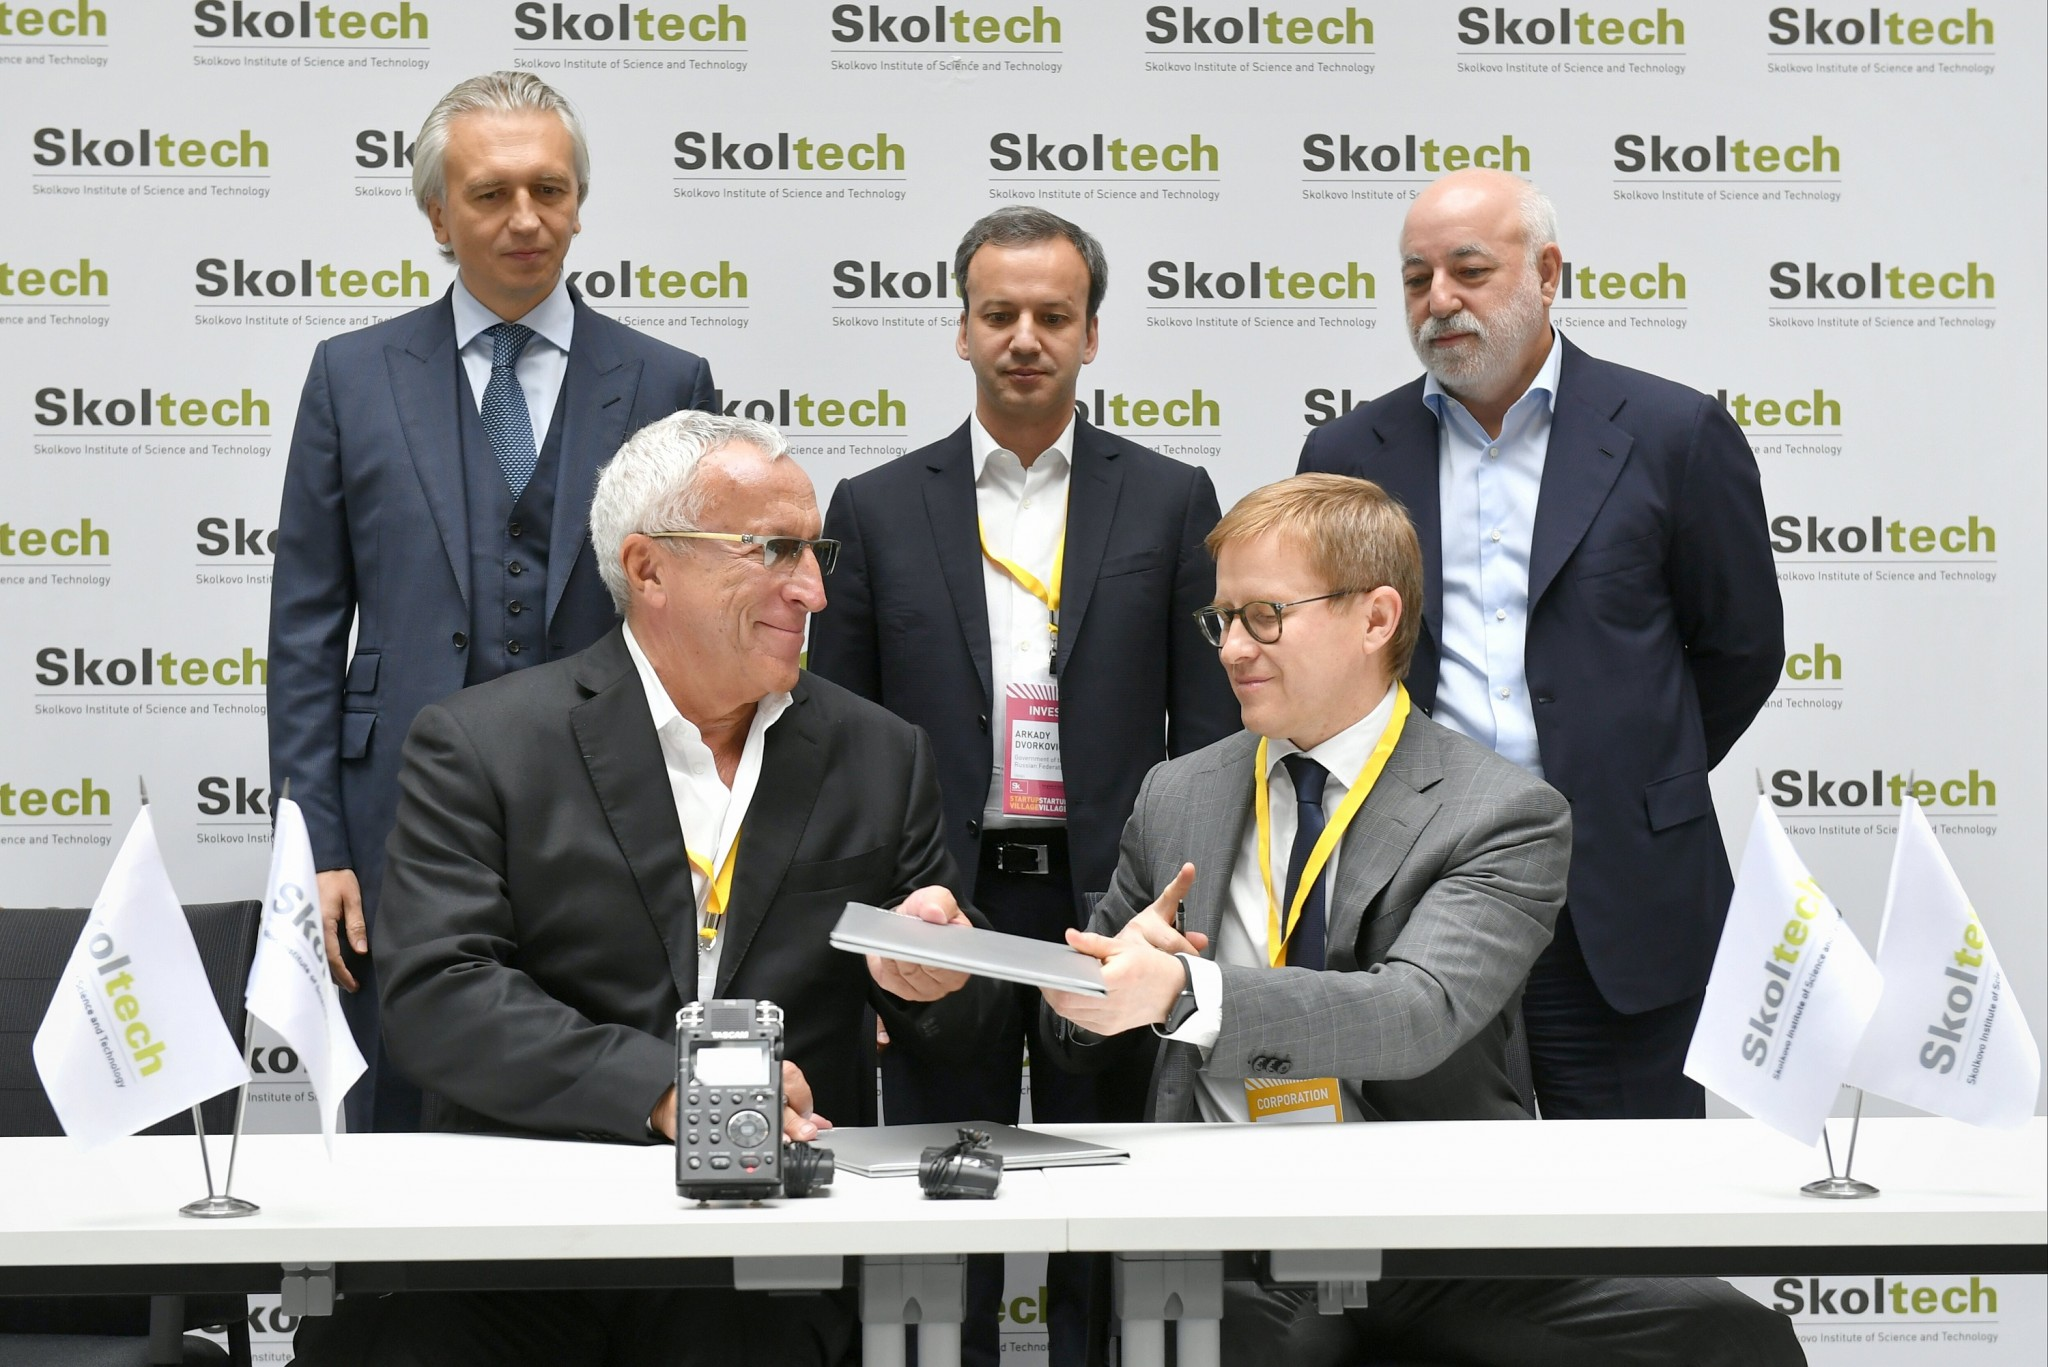 Skoltech President Alexander Kuleshov (bottom left) and Gazprom Neft First Deputy CEO Vadim Yakovlev (bottom right) sign a cooperation agreement as Gazprom Neft CEO Alexander Dyukov, Russian Deputy Prime Minister Arkady Dvorkovich and Skolkovo Foundation President Victor Vekselberg (top left to right) look on during the Startup Village.